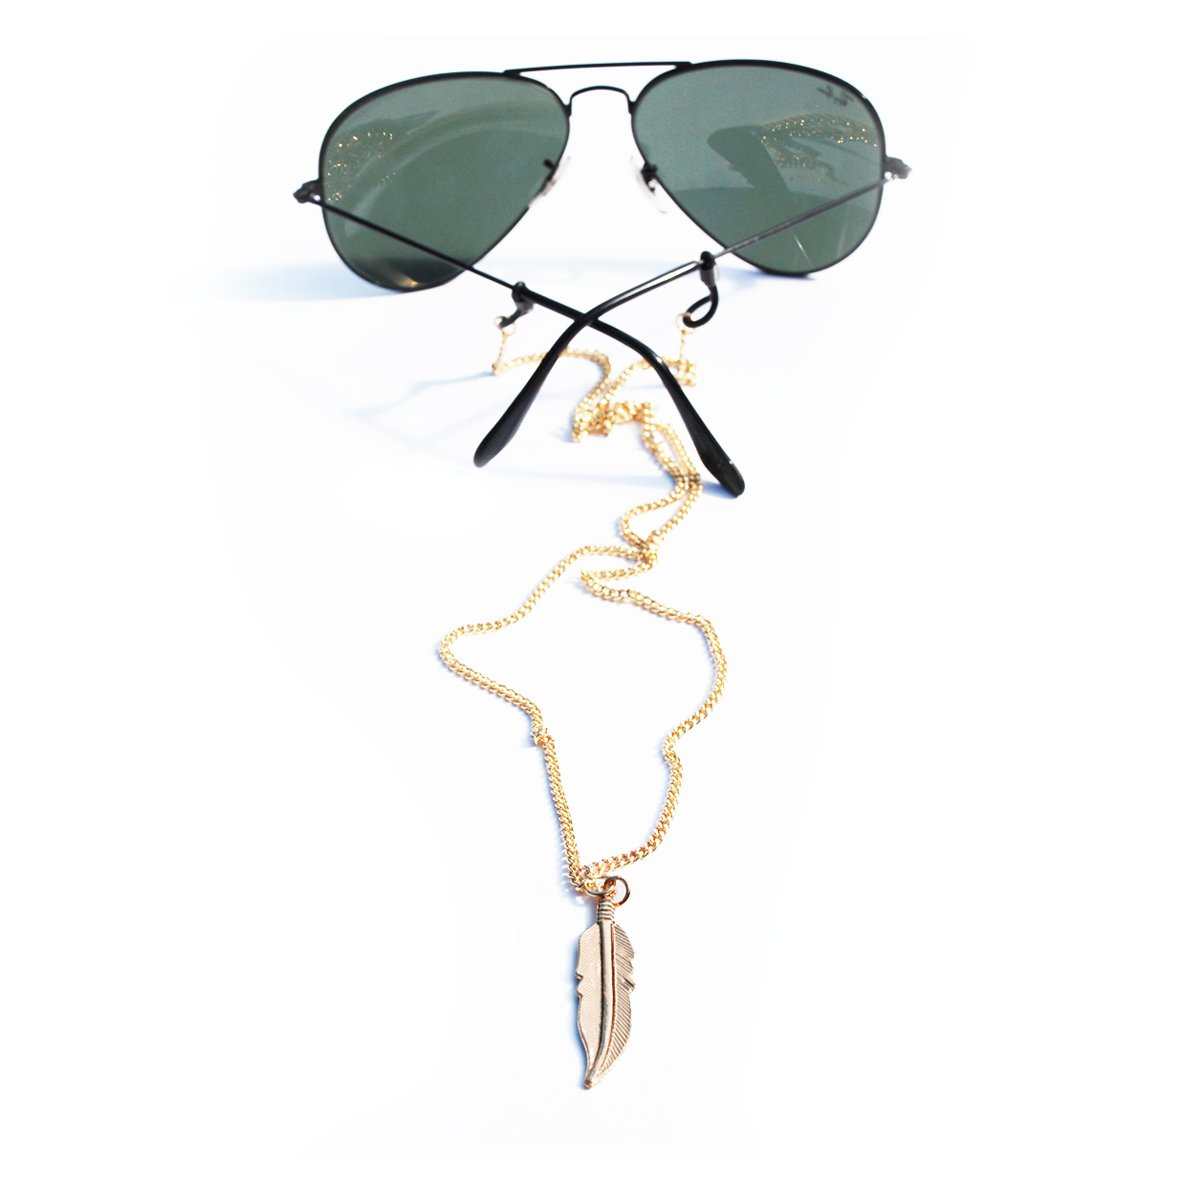 Sintillia Feather Drop Backlace Sunglass Strap, Glasses Chain, Eyeglass Cord (Gold with Black Attachments)